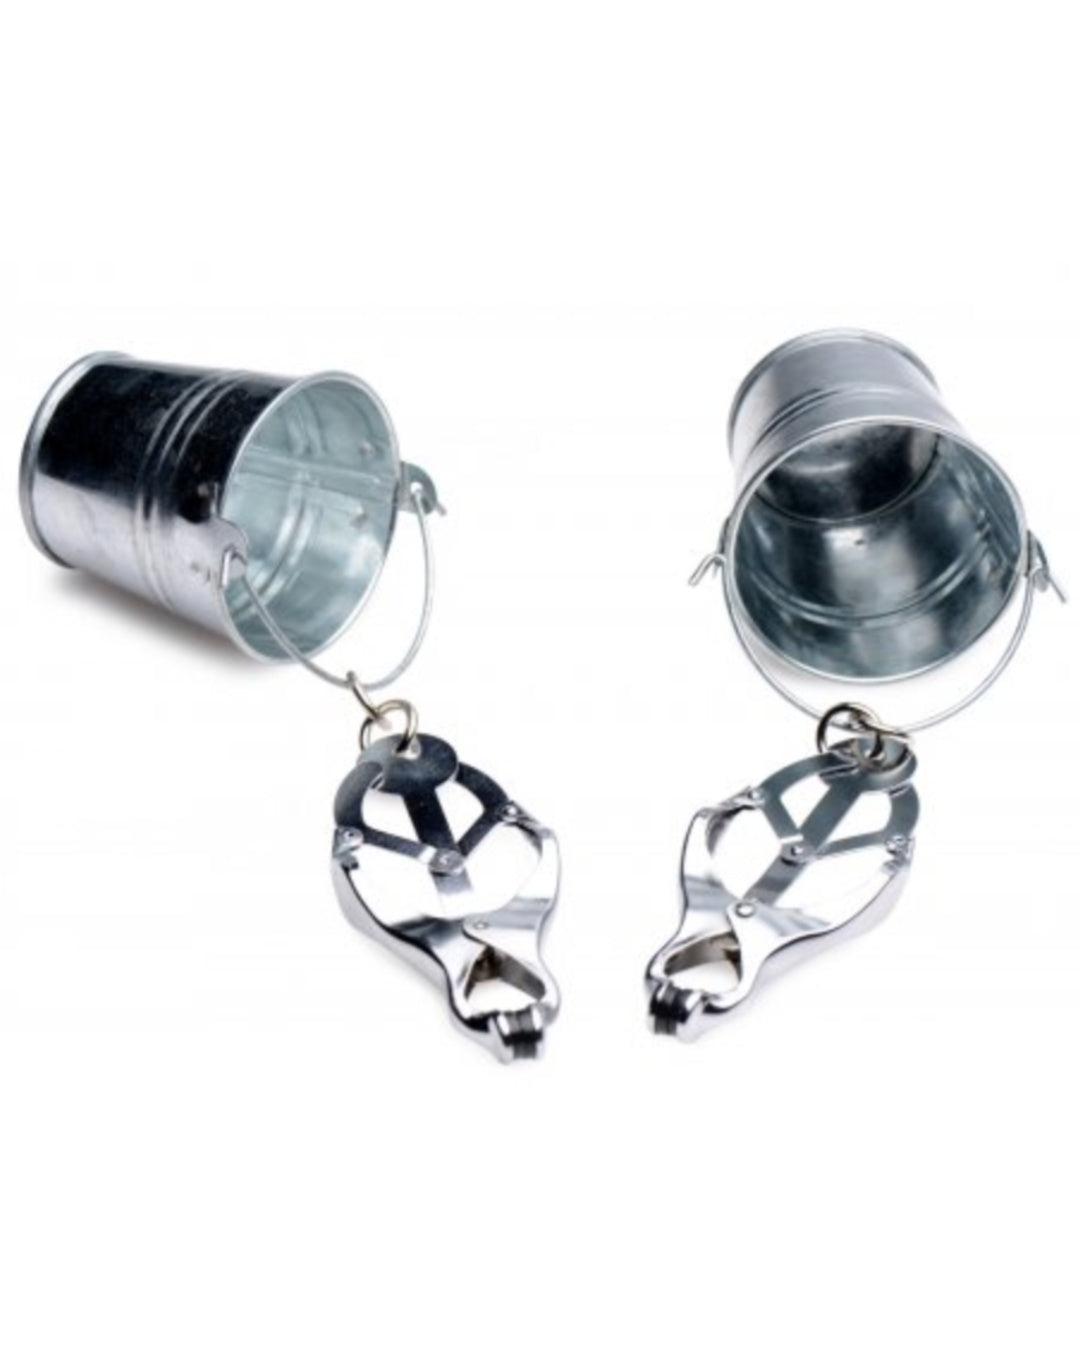 Jugs Nipple Clamps With Stainless Steel Buckets